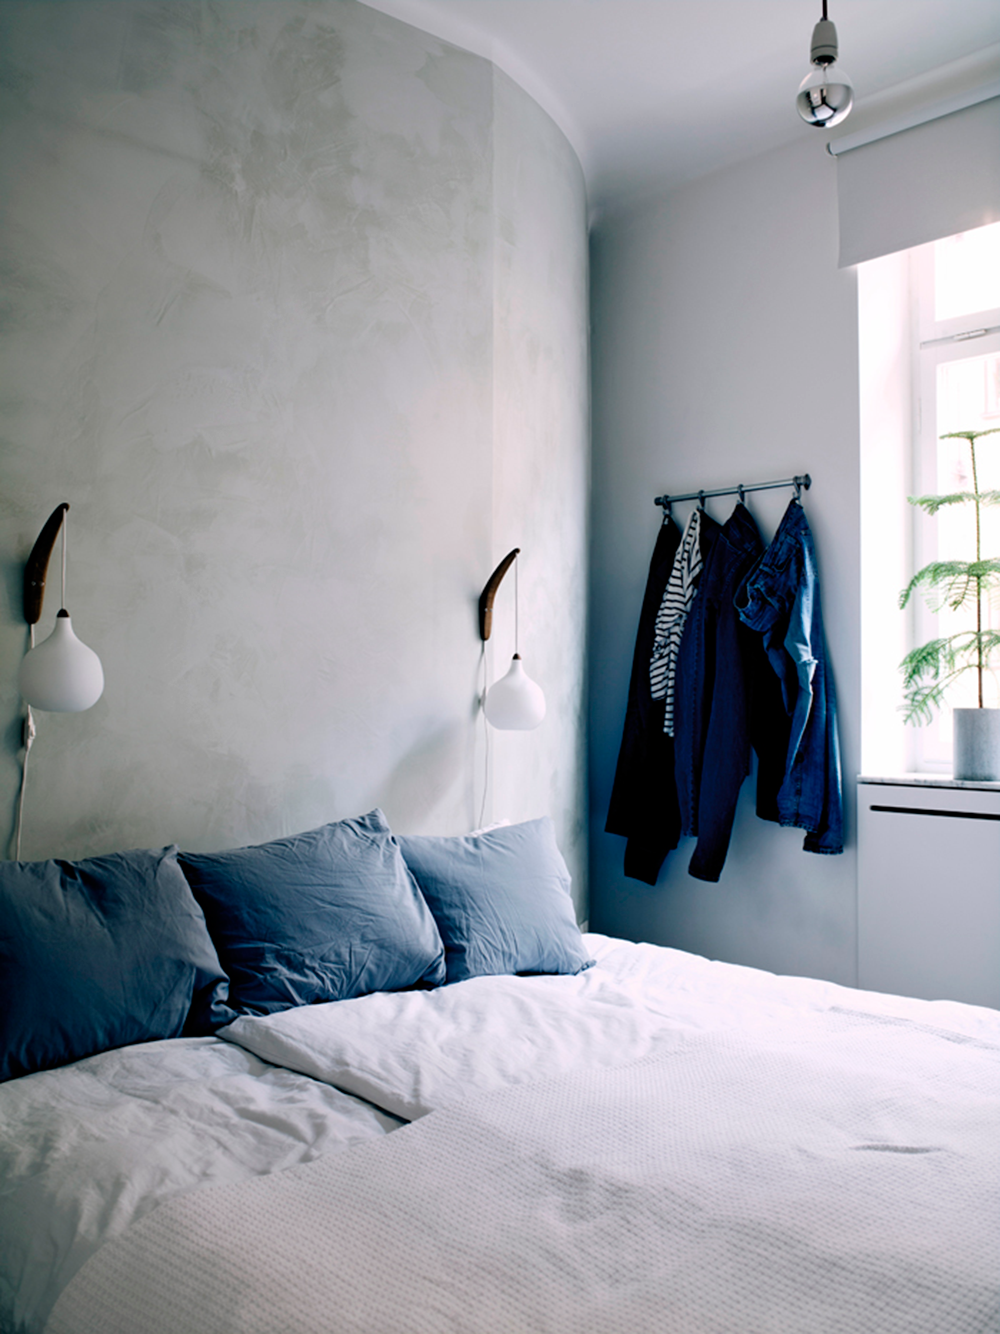 StyleAndMinimalism | Interiors | Small Smart Apartment In Sweden | Bedroom Ideas